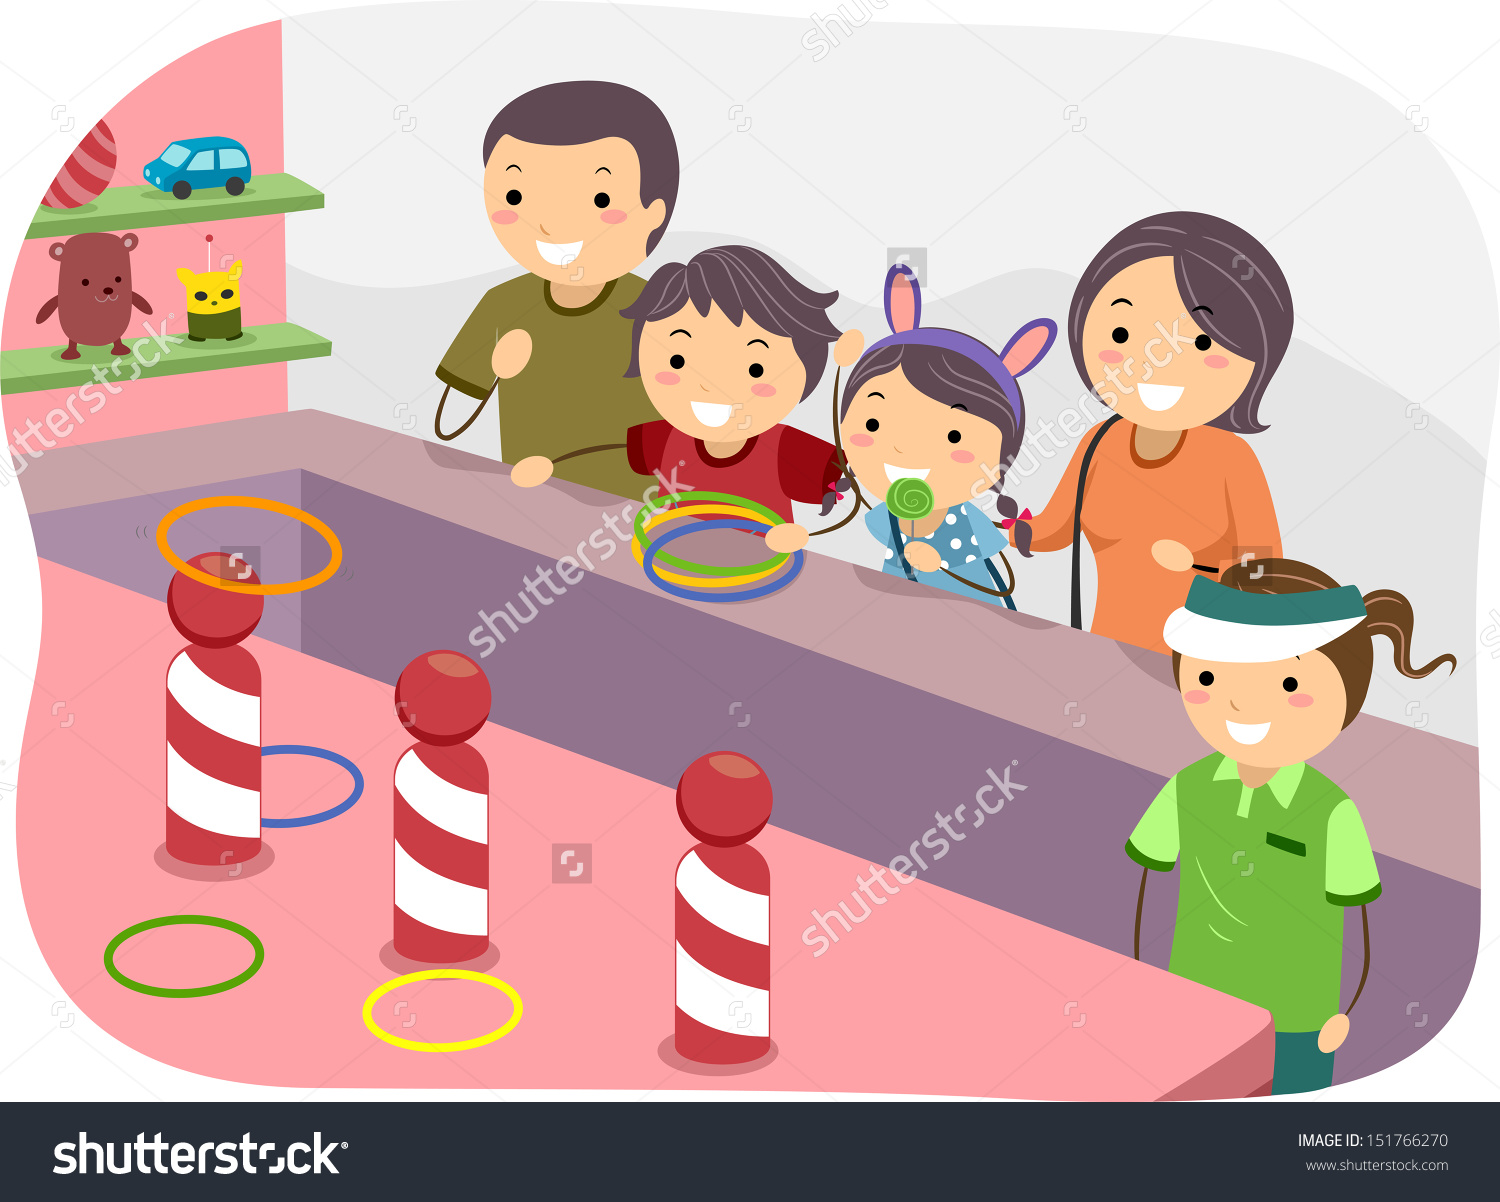 Illustration Stickman Family Playing Ring Toss Stock Vector.